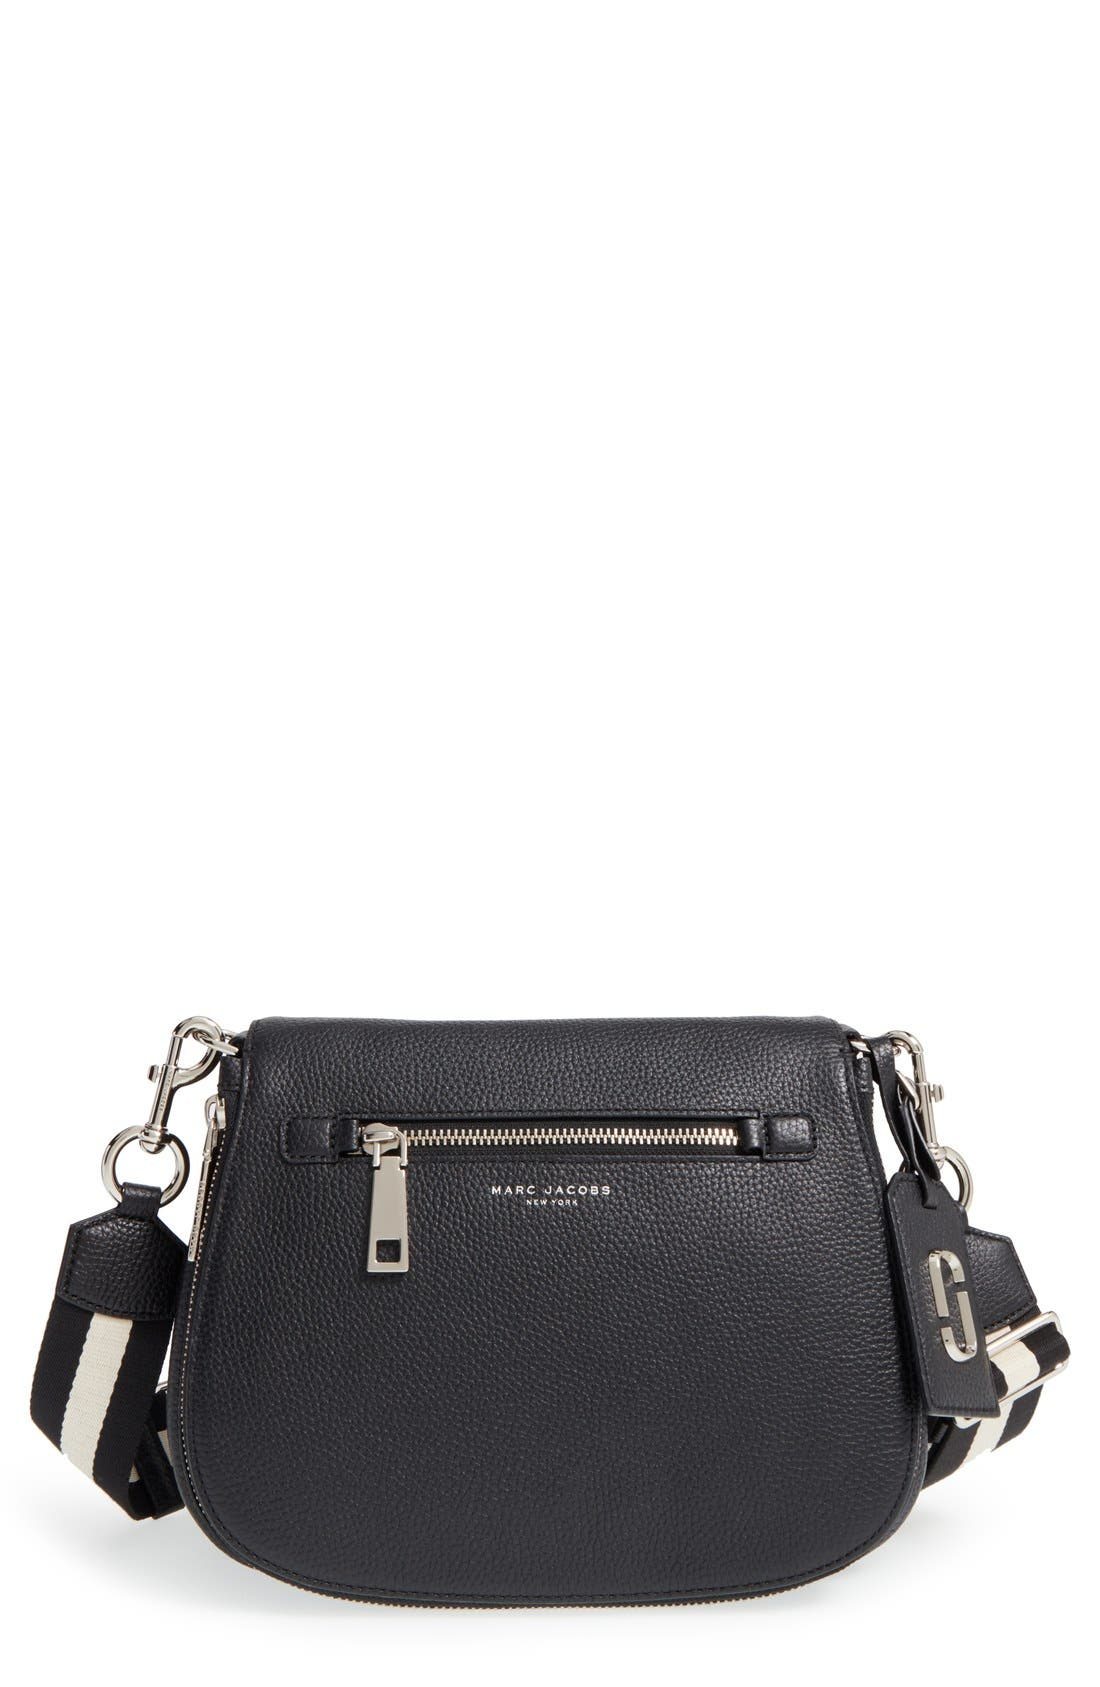 MARC JACOBS 'Gotham' Leather Saddle Bag